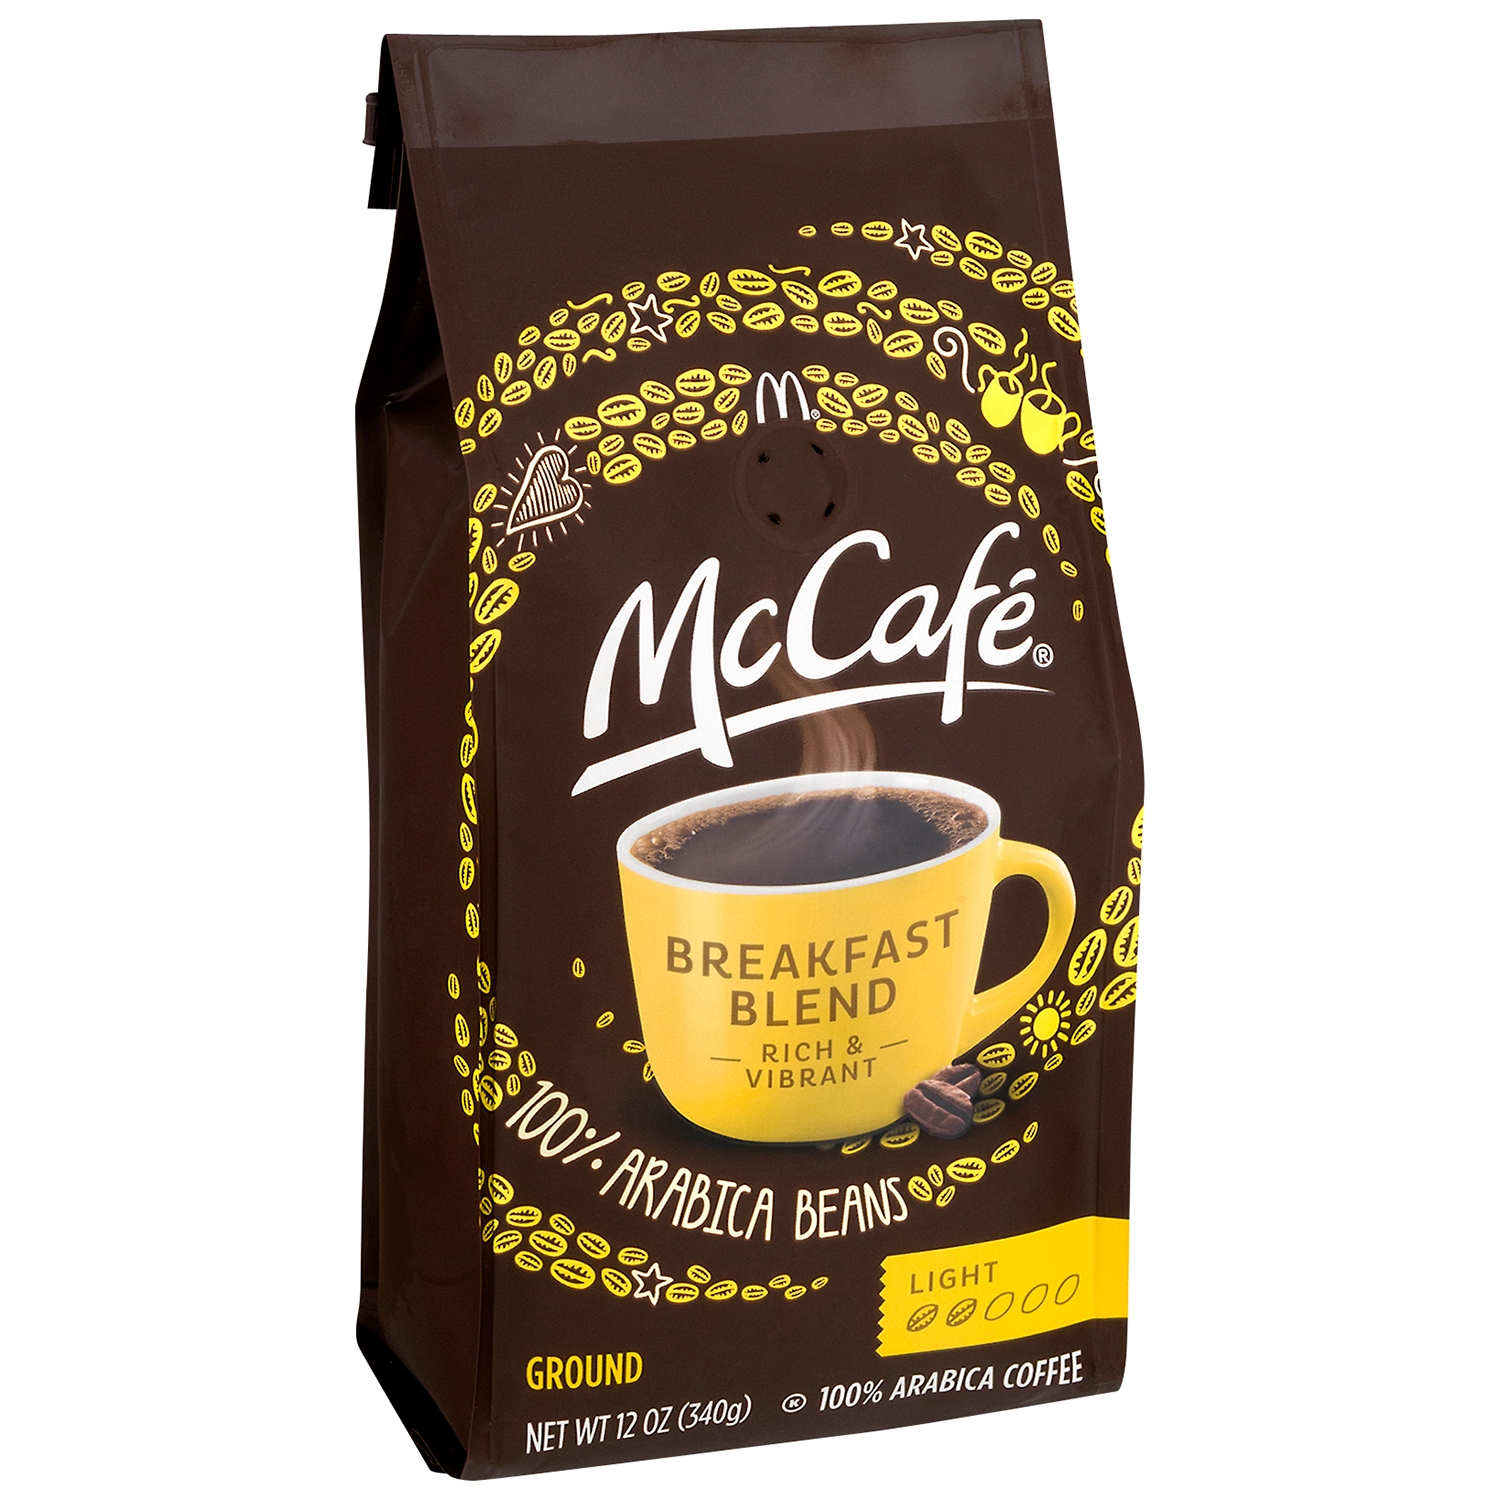 McCafe Breakfast Blend Light Roast Ground Coffee, 12 OZ (340g)